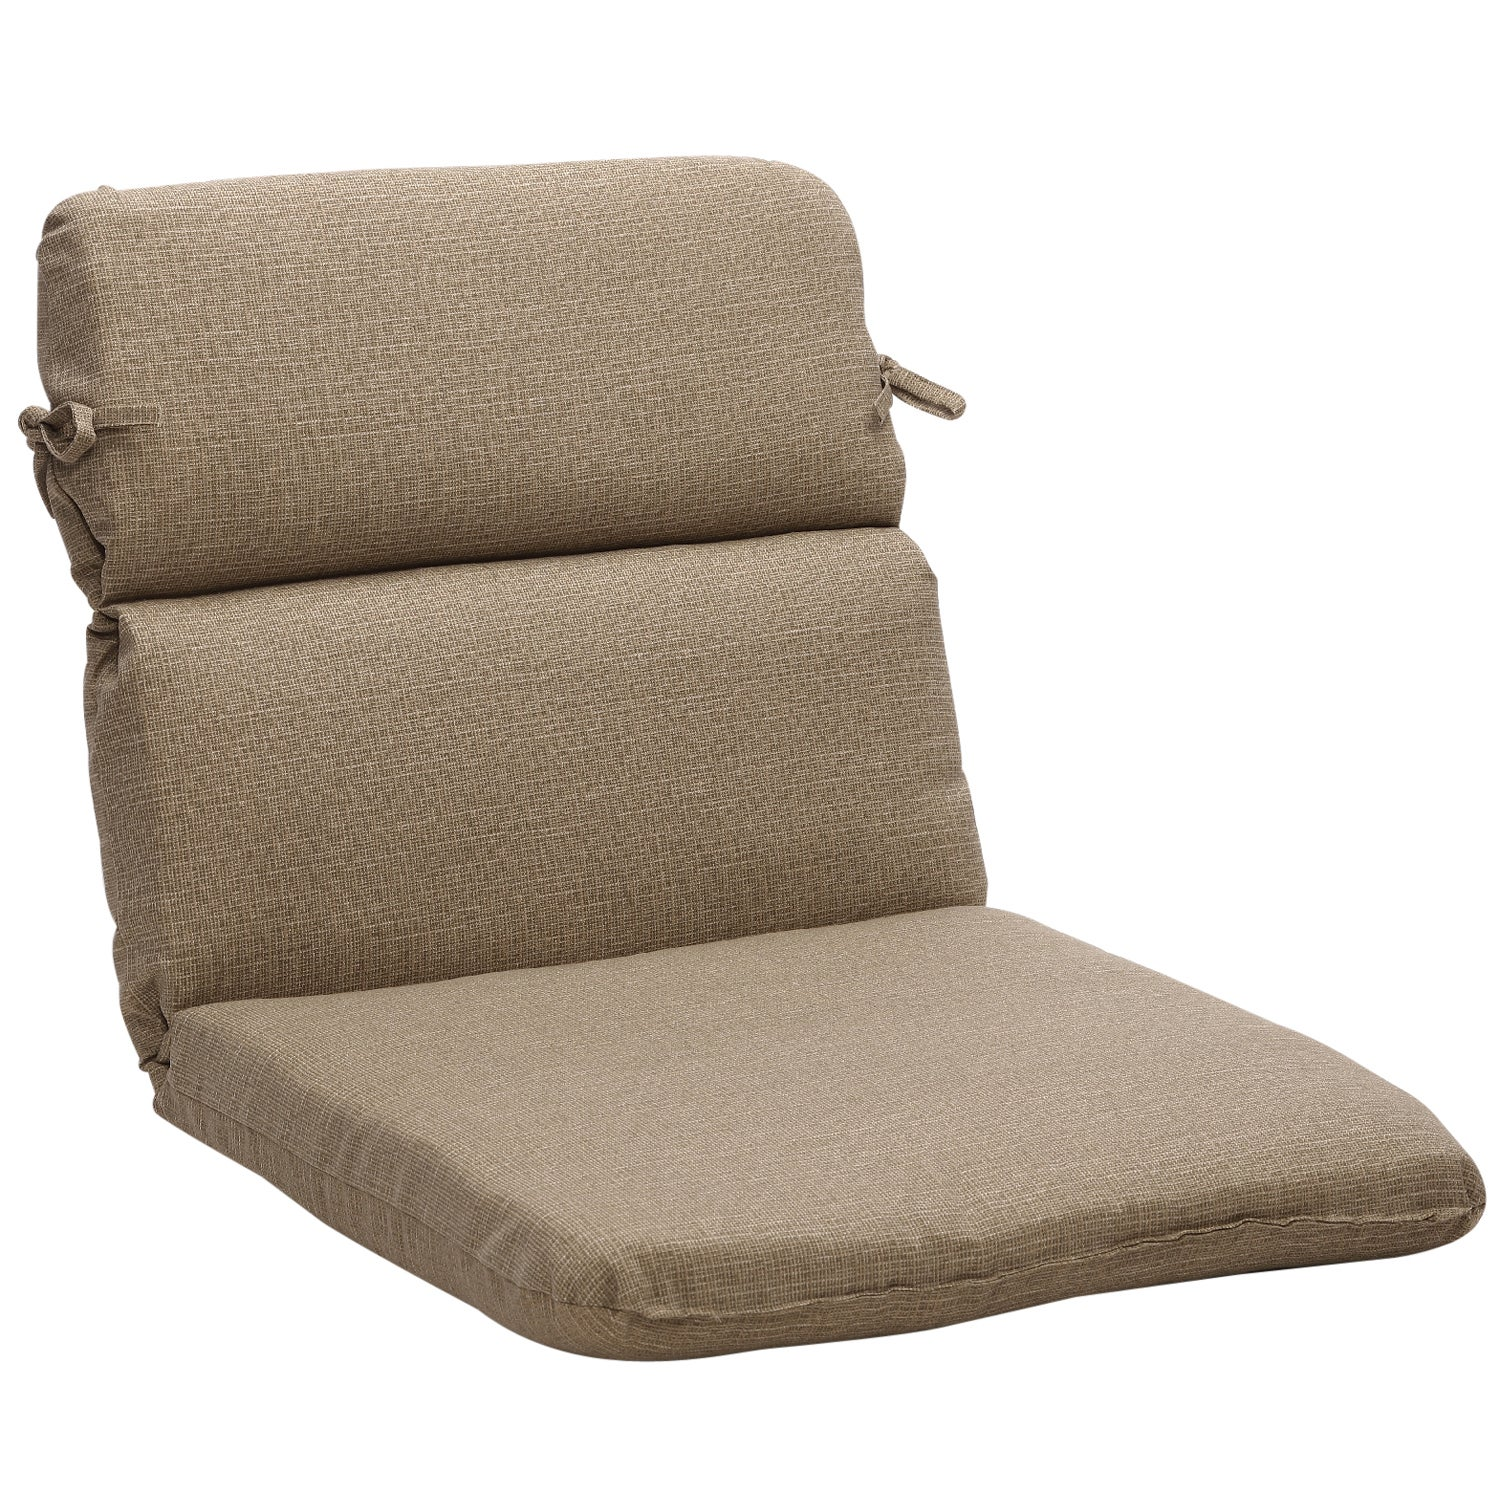 Shop Rounded Solid Taupe Textured Outdoor Chair Cushion Free